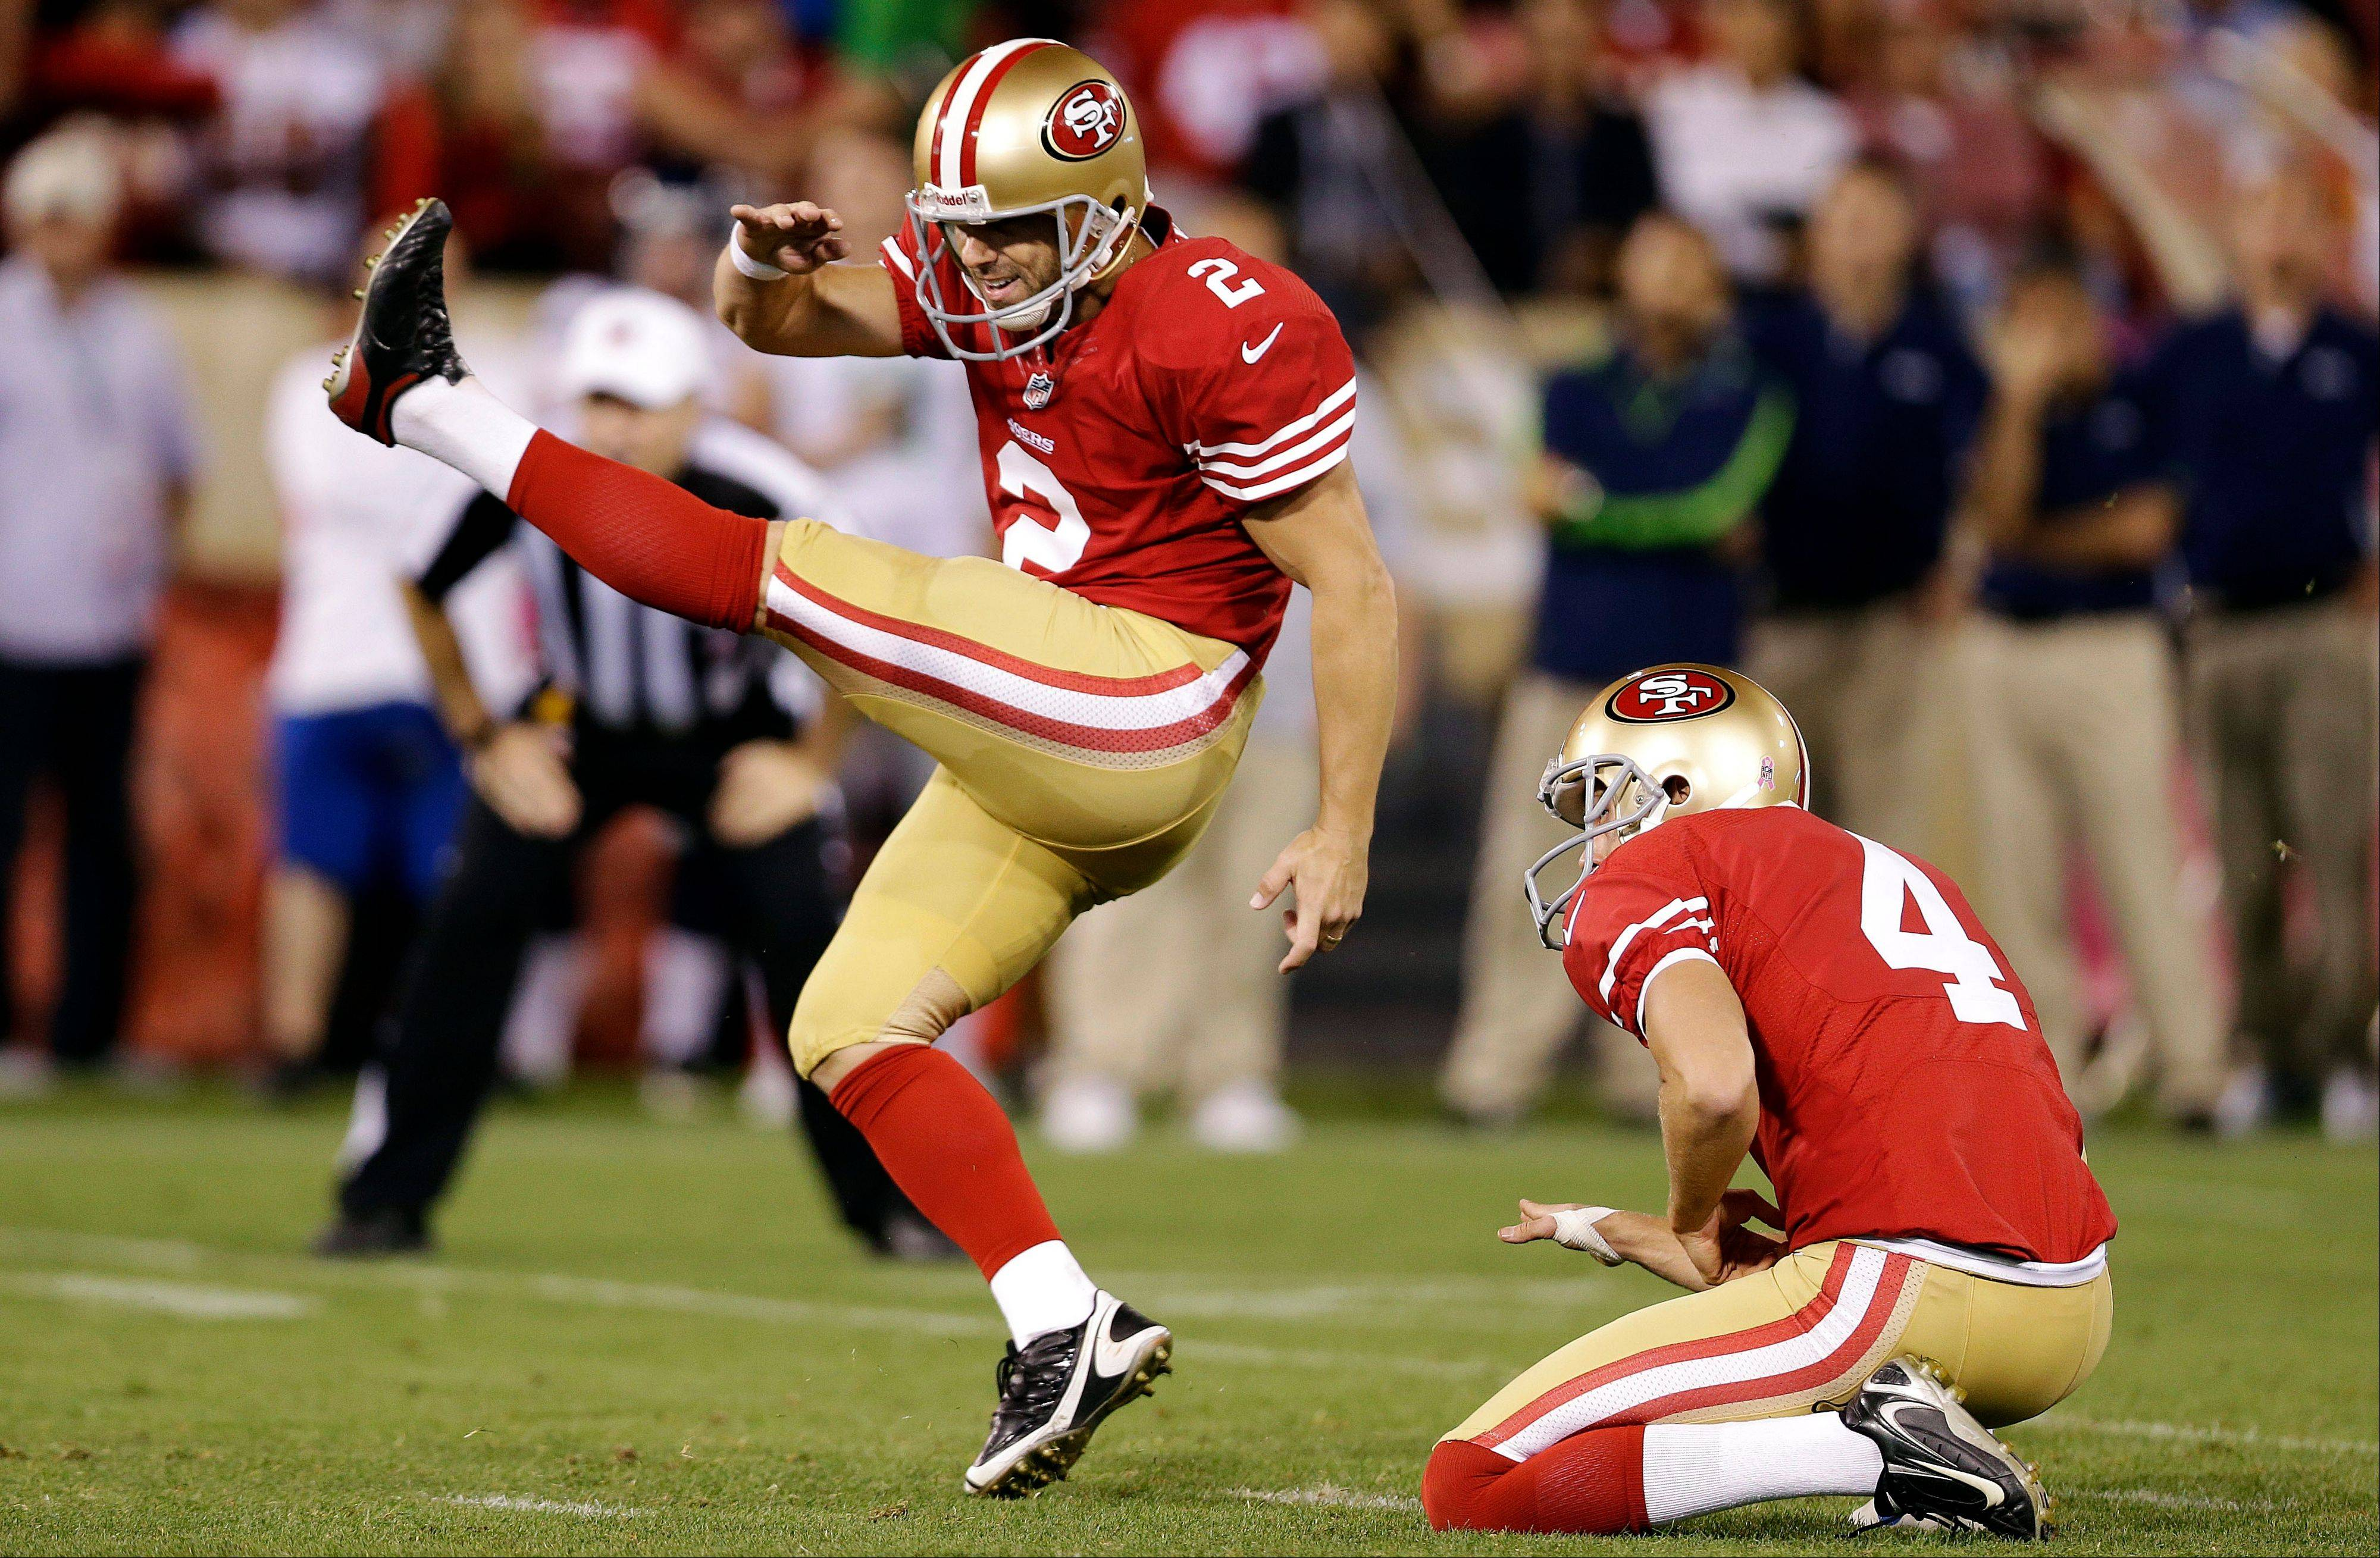 San Francisco 49ers place kicker David Akers (2) makes a field goal as punter Andy Lee (4) holds during the fourth quarter of an NFL football game against the Seattle Seahawks in San Francisco, Thursday, Oct. 18, 2012. The 49ers won 13-6. (AP Photo/Marcio Jose Sanchez)